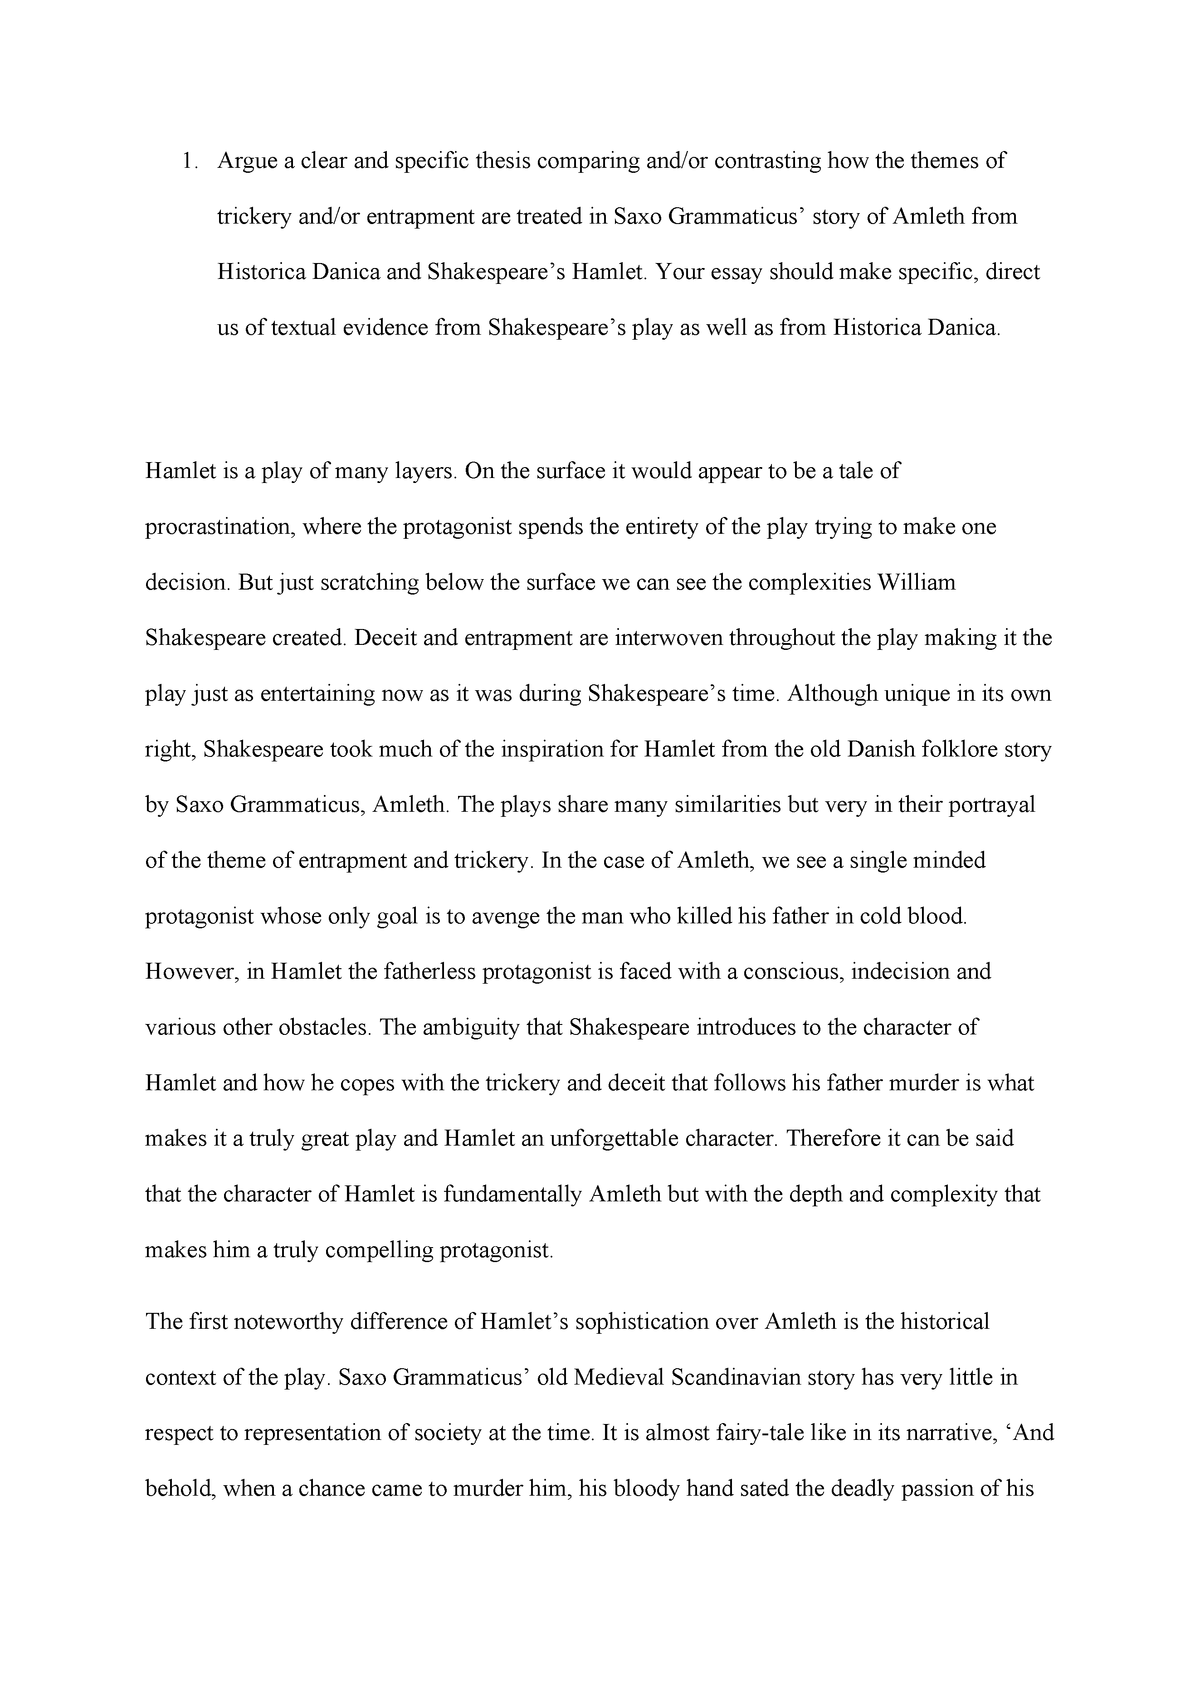 Essays On Different Topics In English  High School Essay Sample also Examples Of Thesis Statements For Narrative Essays Trickery And Entrapment In Hamlet  Second Year English  English Essay Topics For College Students